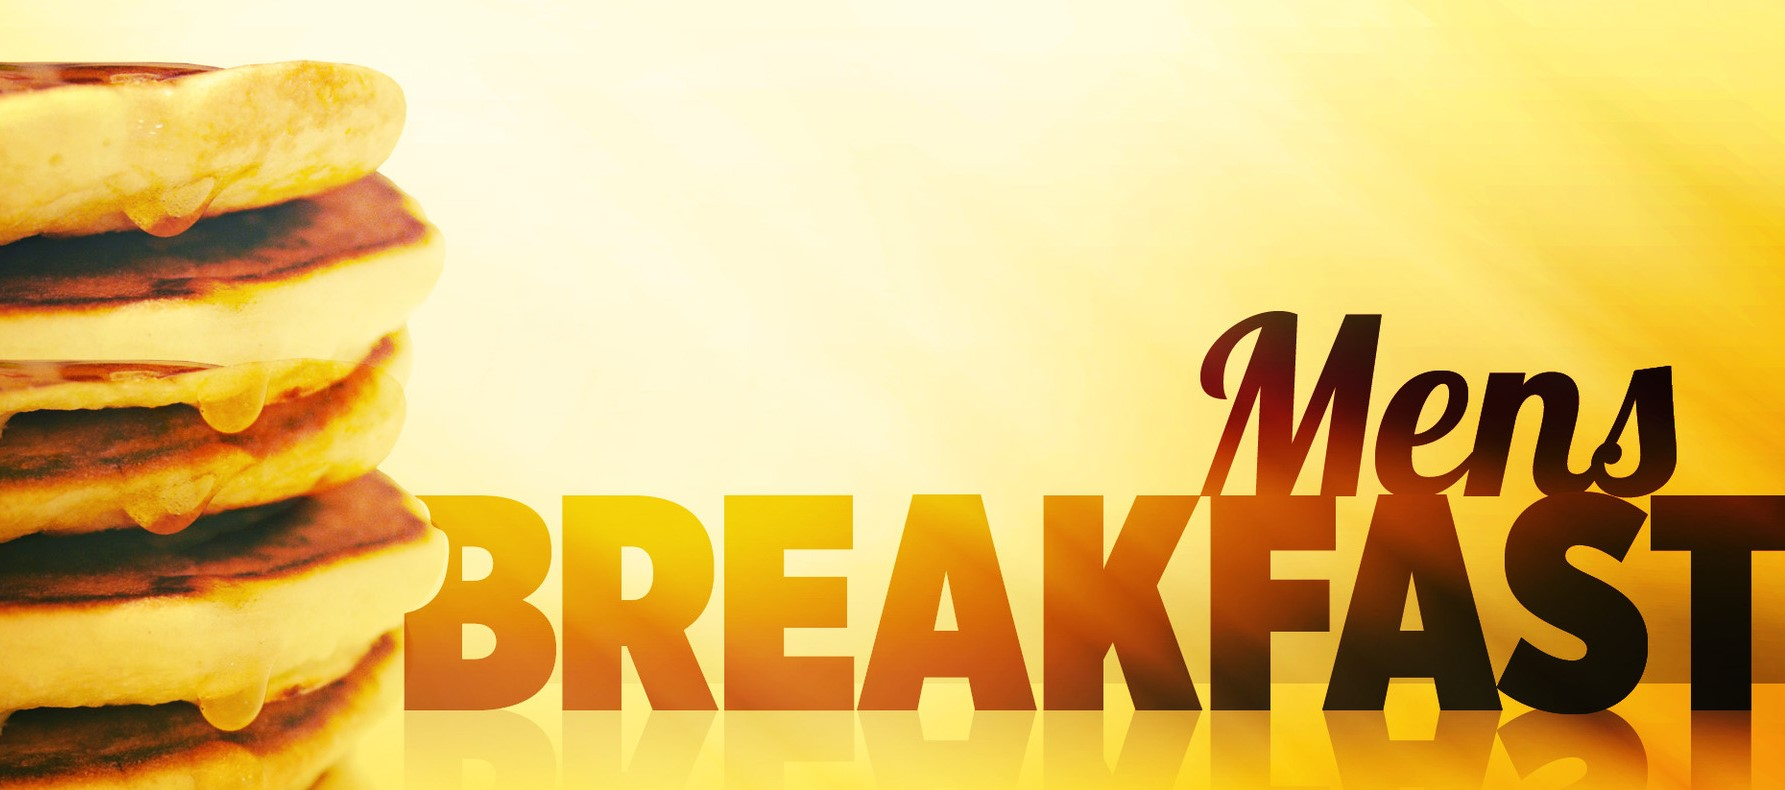 Ministries - Men's Breakfast